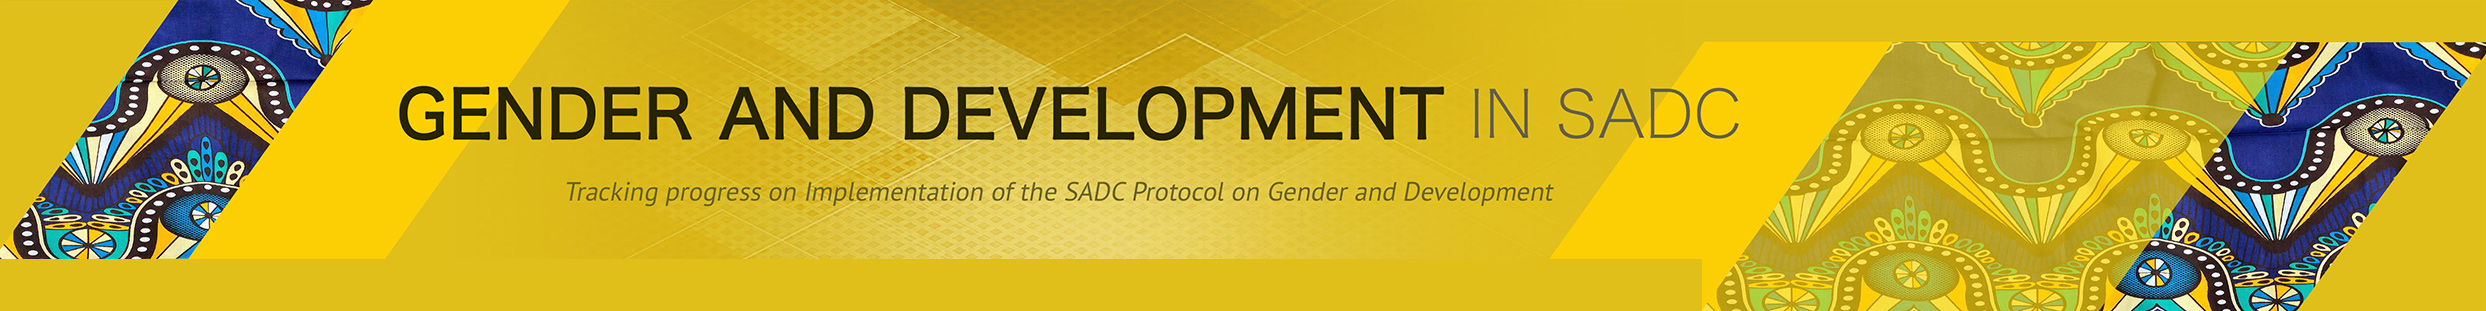 Gender and Development Monitor in SADC